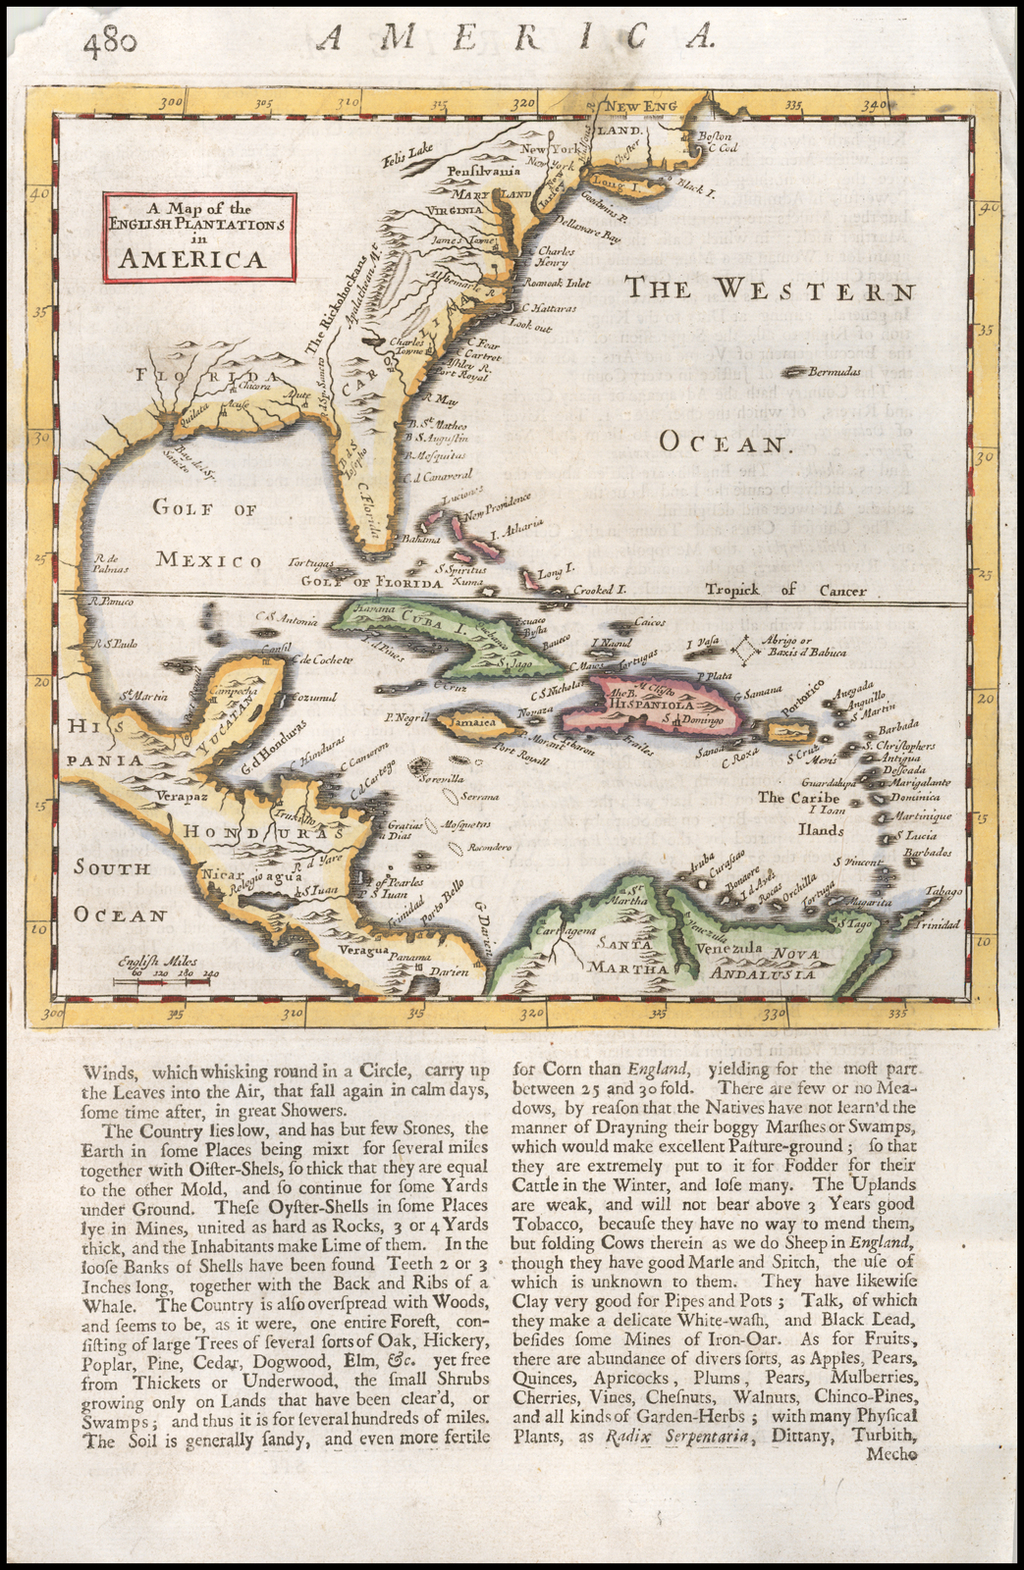 A Map of the English Plantations in America By Herman Moll